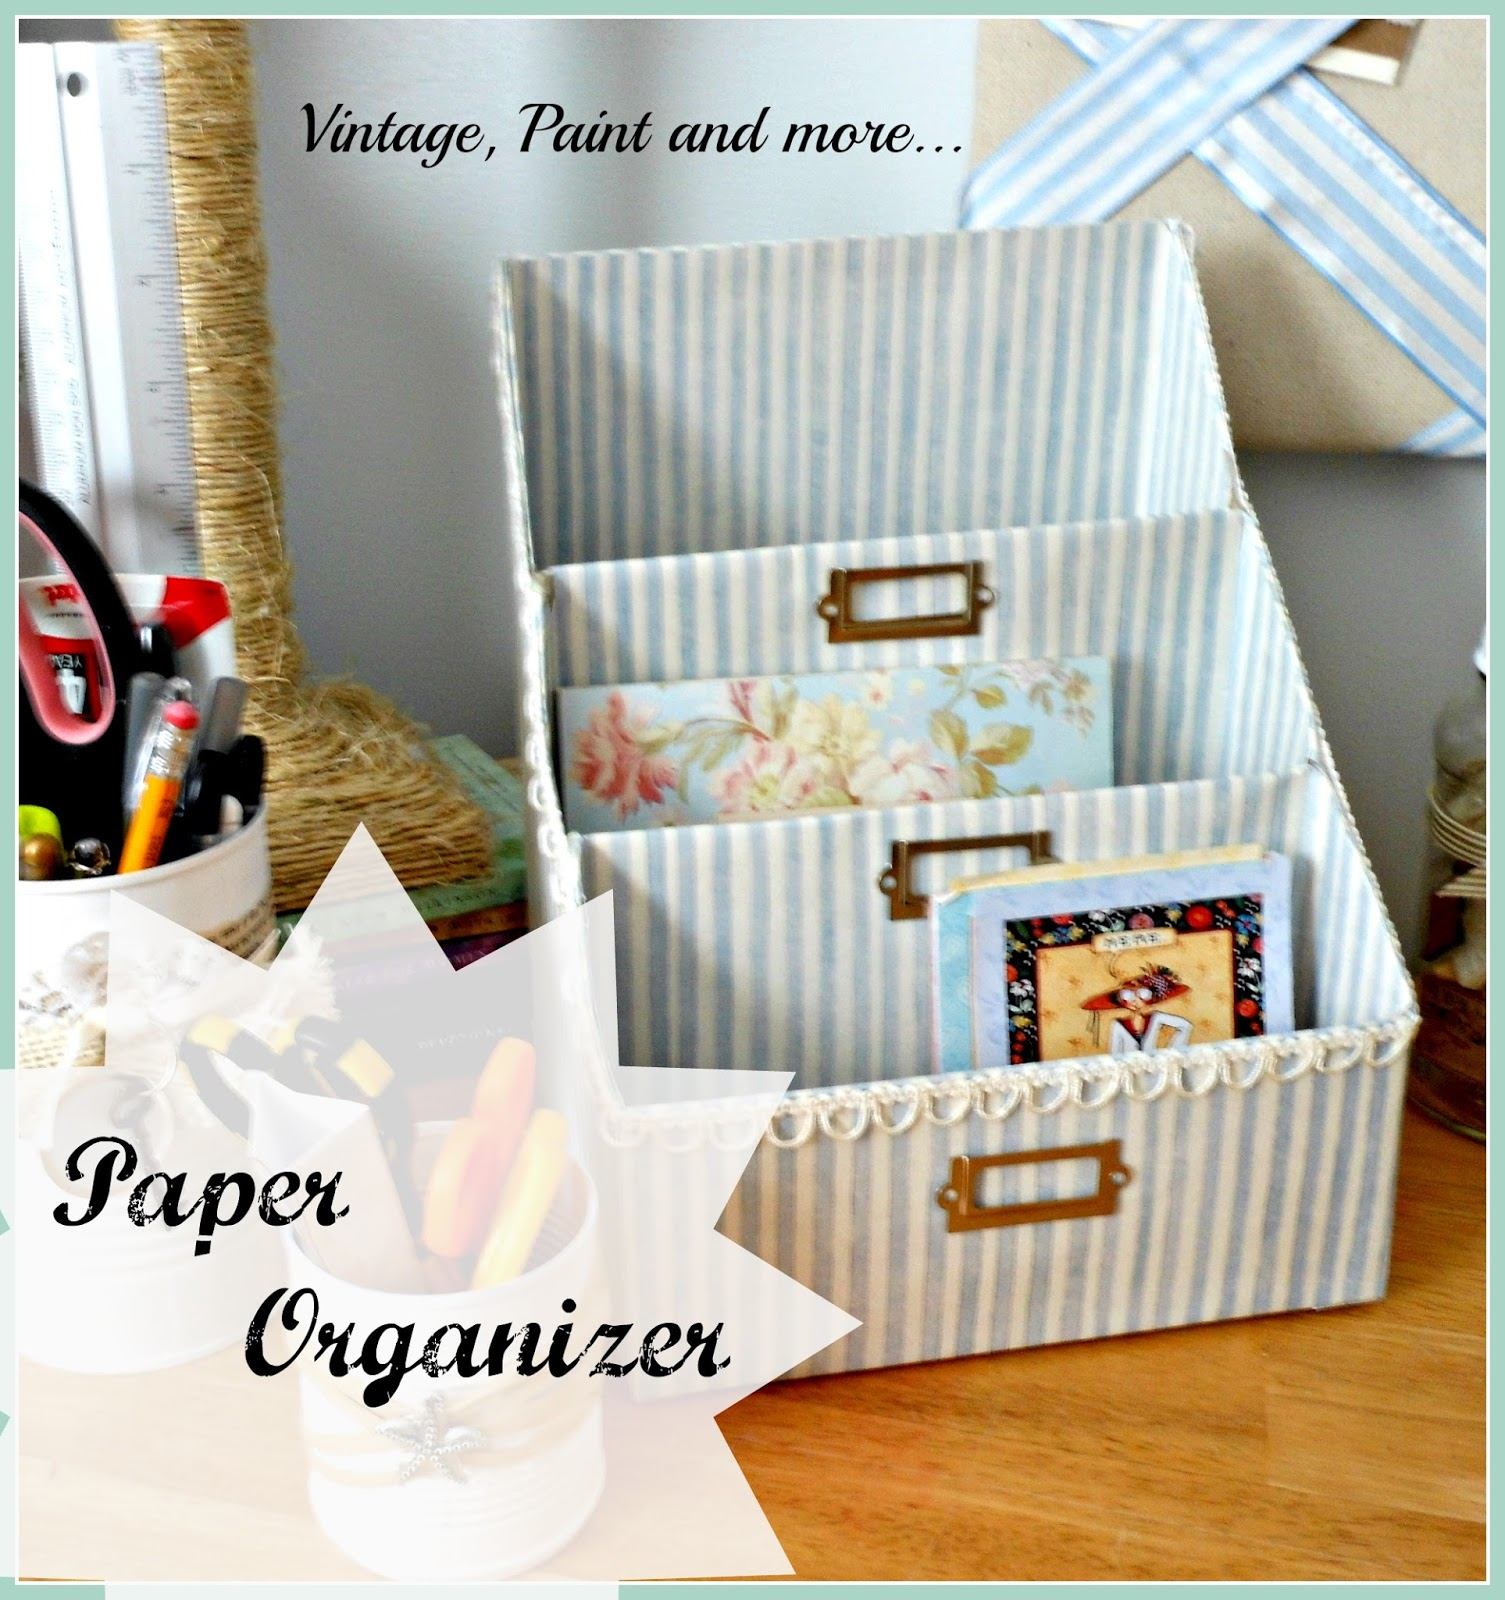 Vintage, Paint and more... paper organizer made from cereal boxes and scrapbook paper